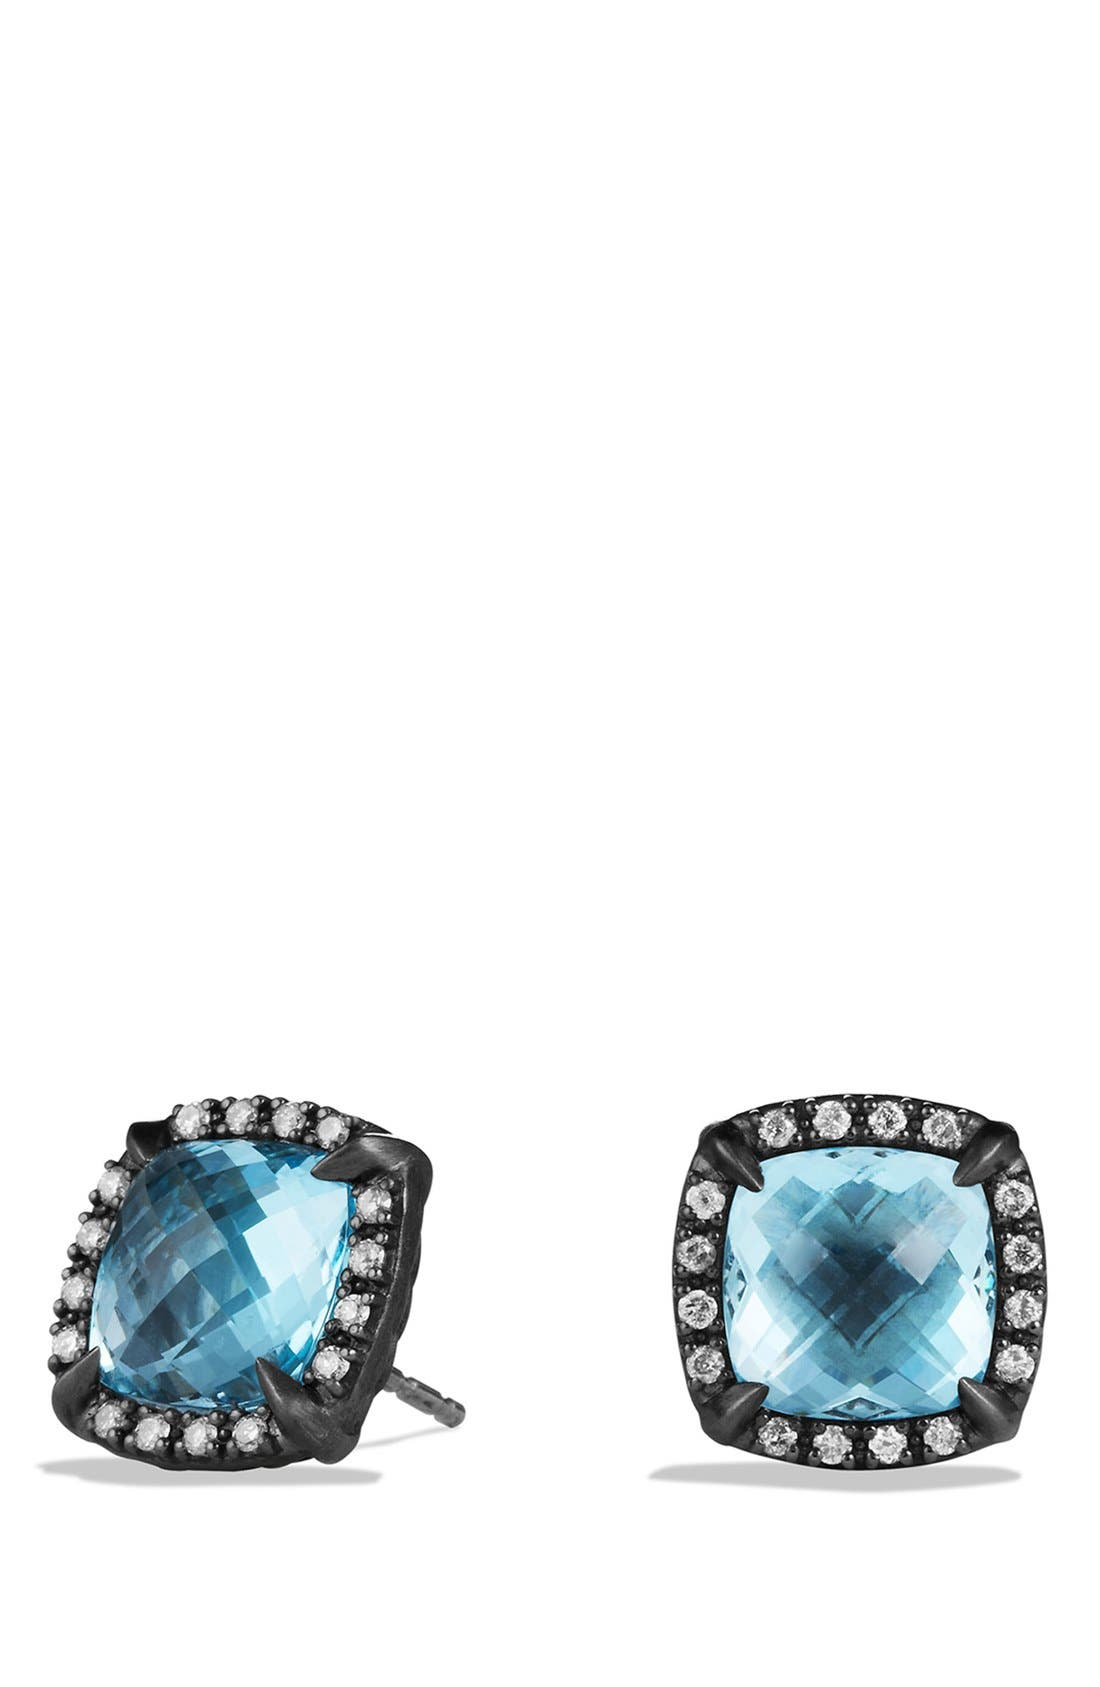 'Châtelaine' Earrings with Semiprecious Stone and Diamonds,                             Main thumbnail 1, color,                             400